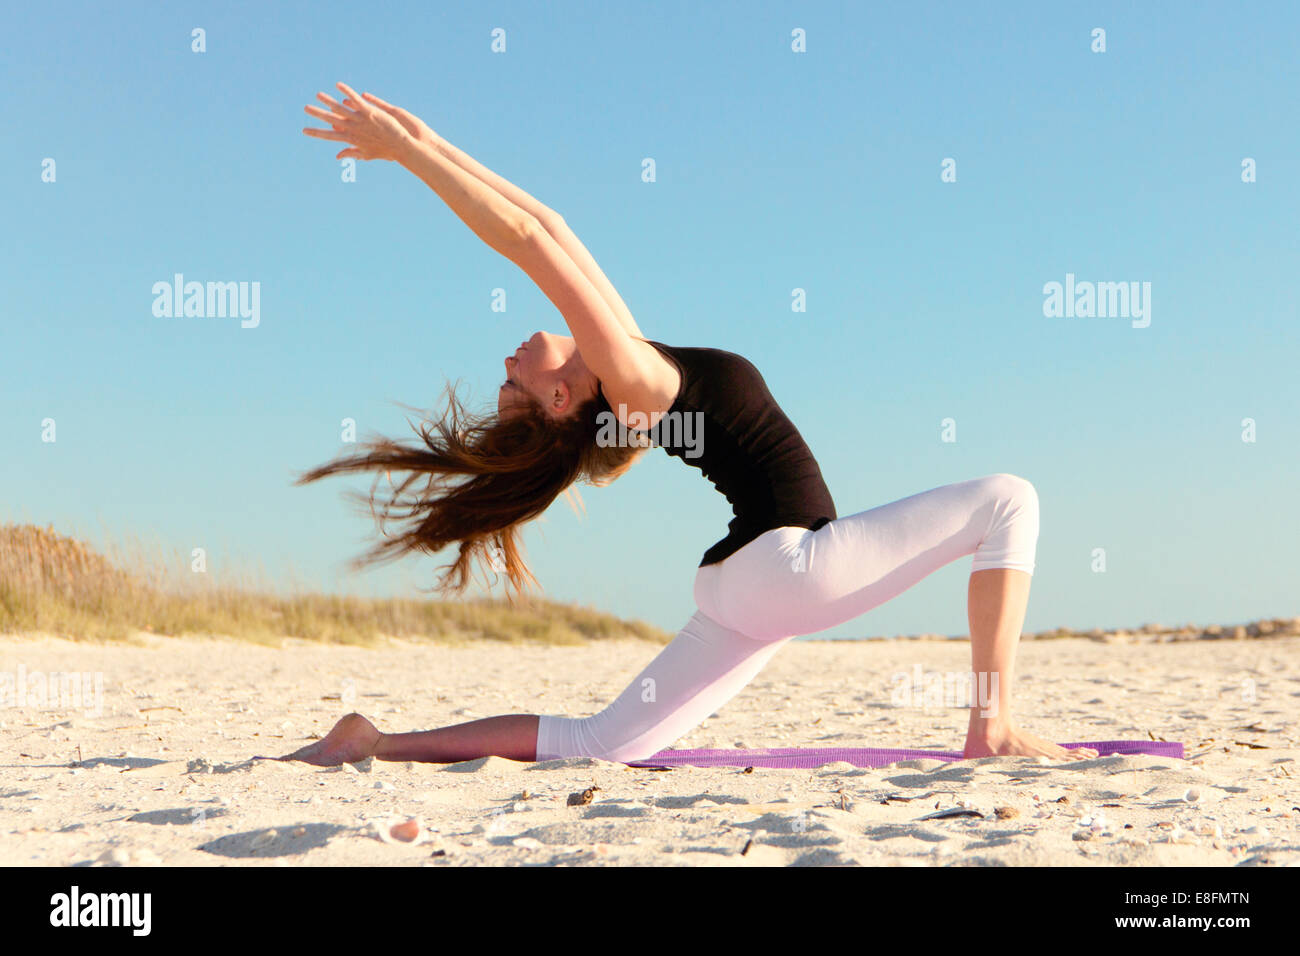 Woman doing yoga on beach - Stock Image